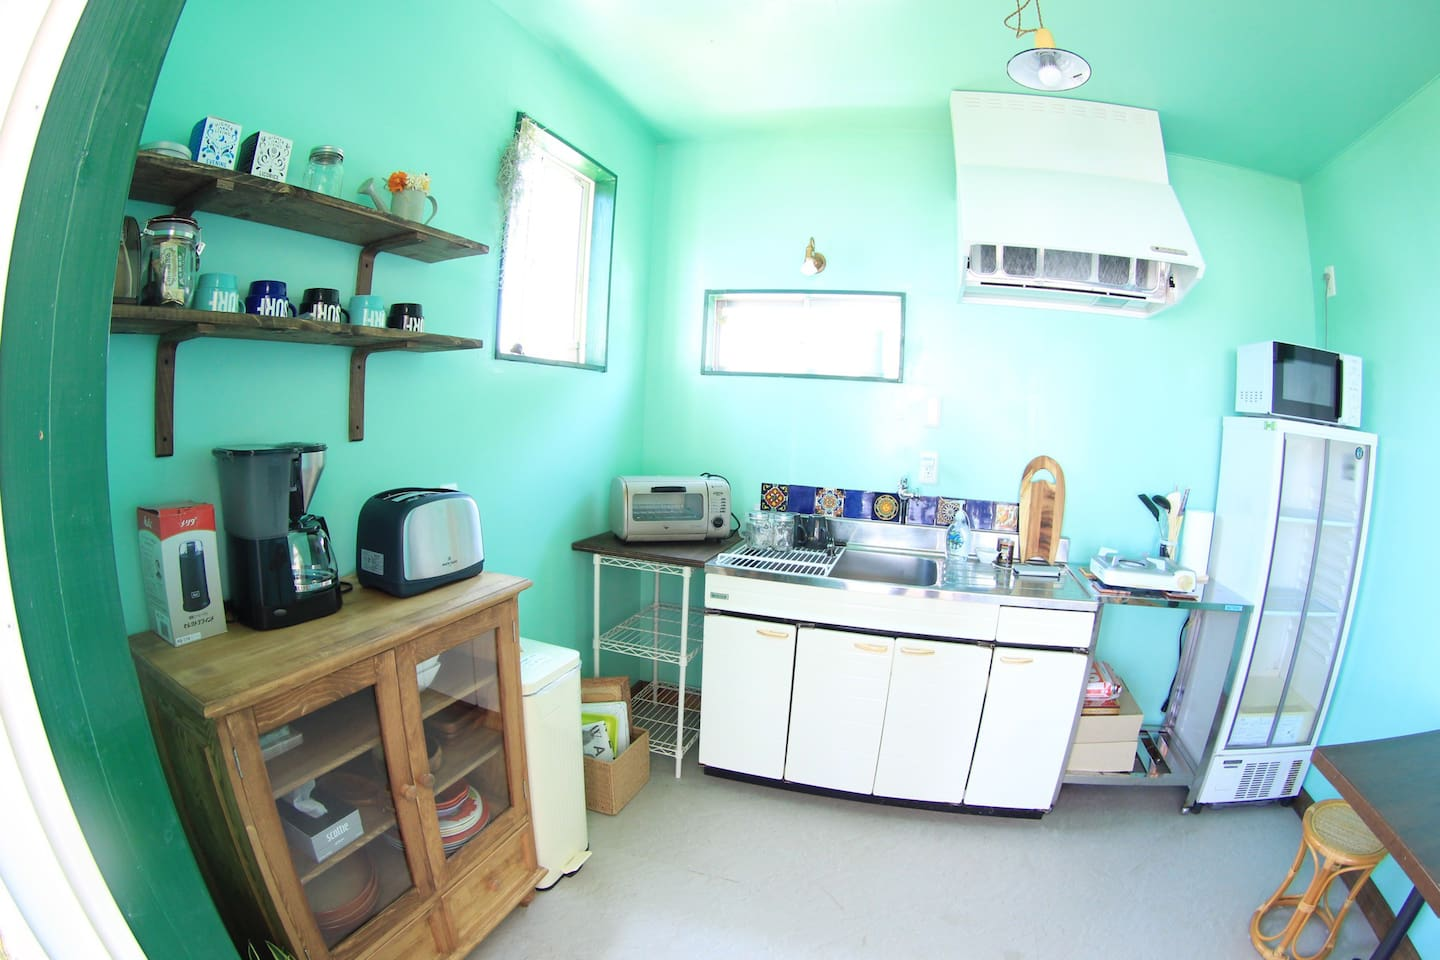 Private room for 1-2 /share Kitchen & Bath room - Cabins for Rent in ...